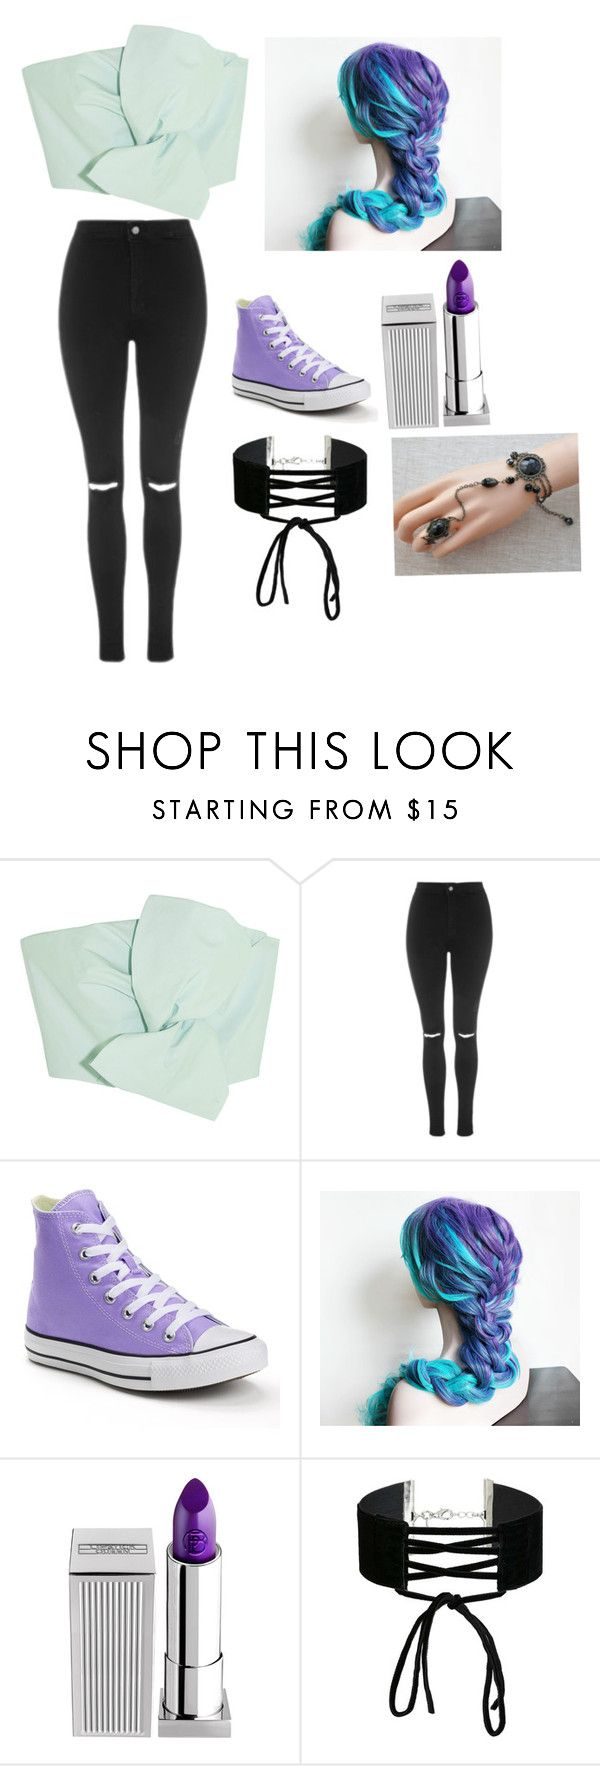 """Color"" by midnight952857 ❤ liked on Polyvore featuring Delpozo, Topshop, Converse, Lipstick Queen, Miss Selfridge and Whit"